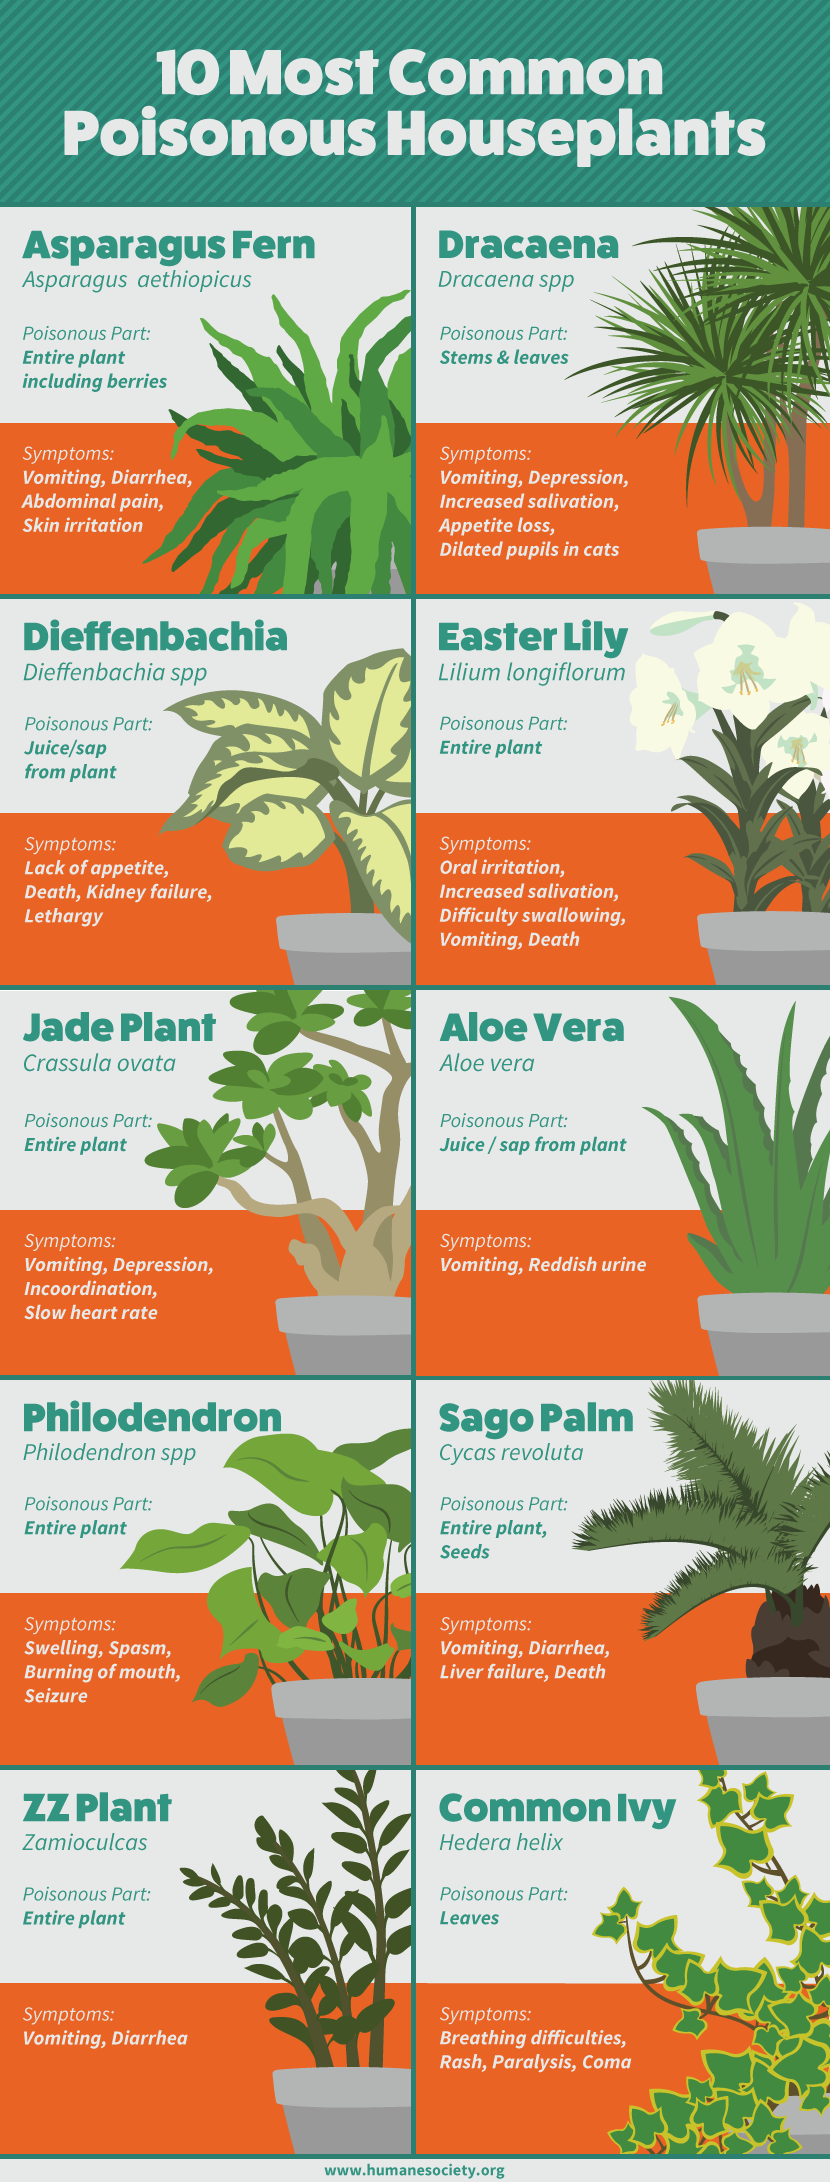 Design Plants Safe For Dogs how to grow houseplants without harming your pets not all a guide dangerous for keep dogs and cats safe by avoiding contact with these popular decorative plants